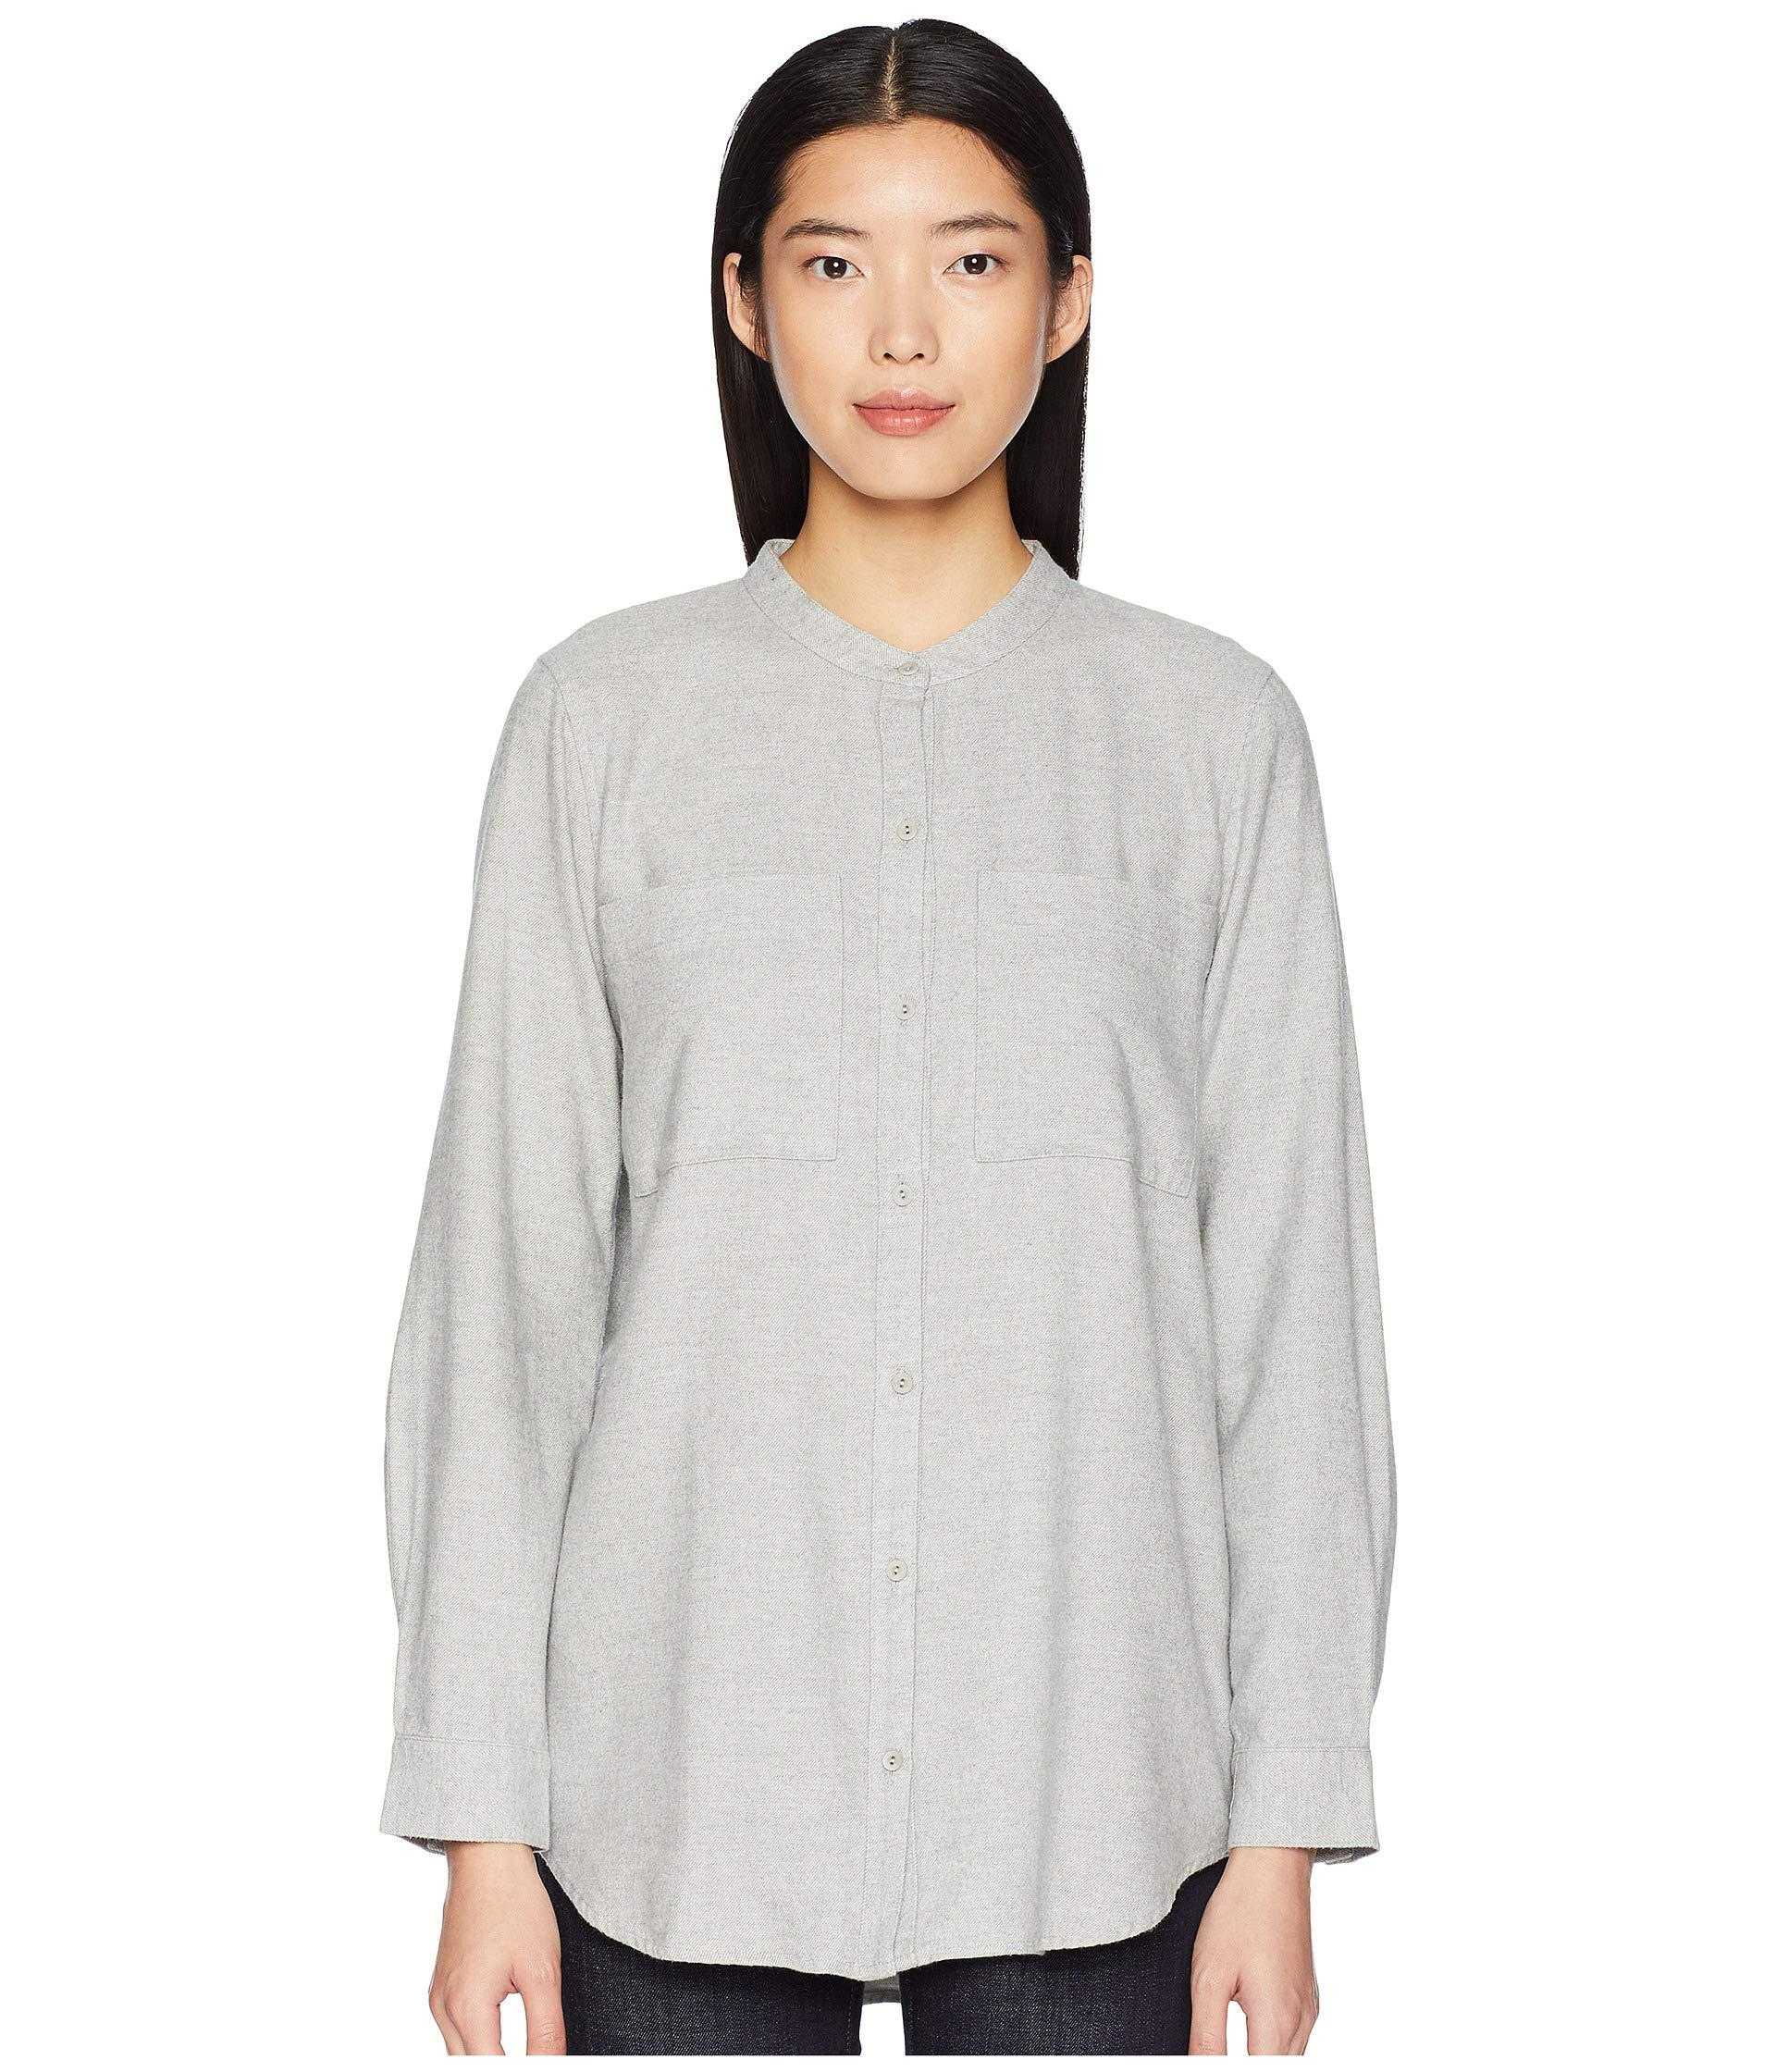 992d9157201cf Lyst - Eileen Fisher Organic Cotton Flannel Twill Mandarin Collar ...